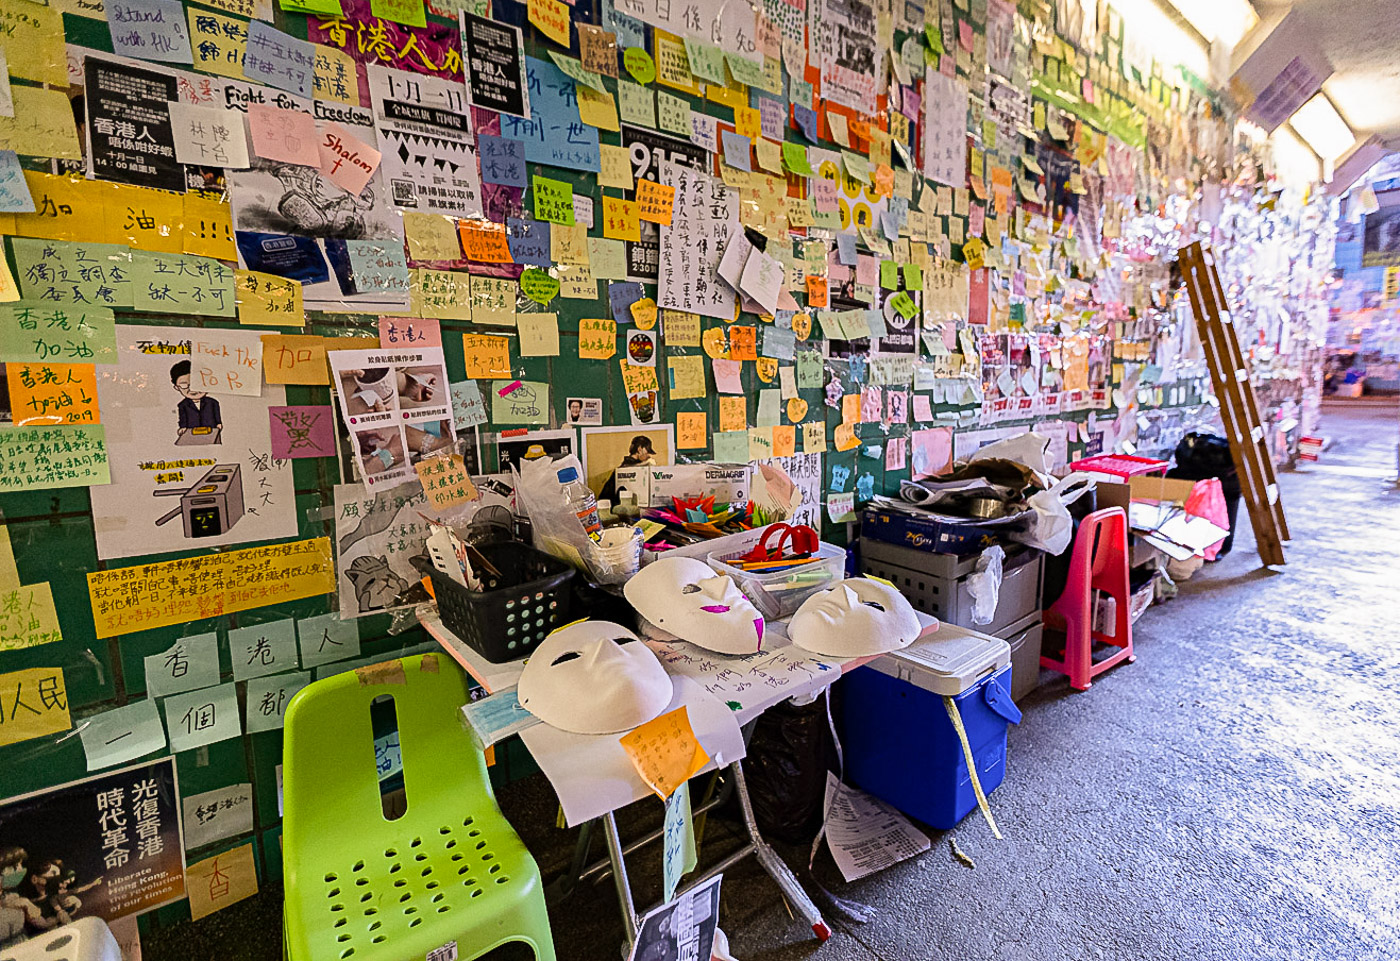 A small chair and a table full of art supplies sits against the pedestrian tunnel wall, itself covered in posters and sticky notes.